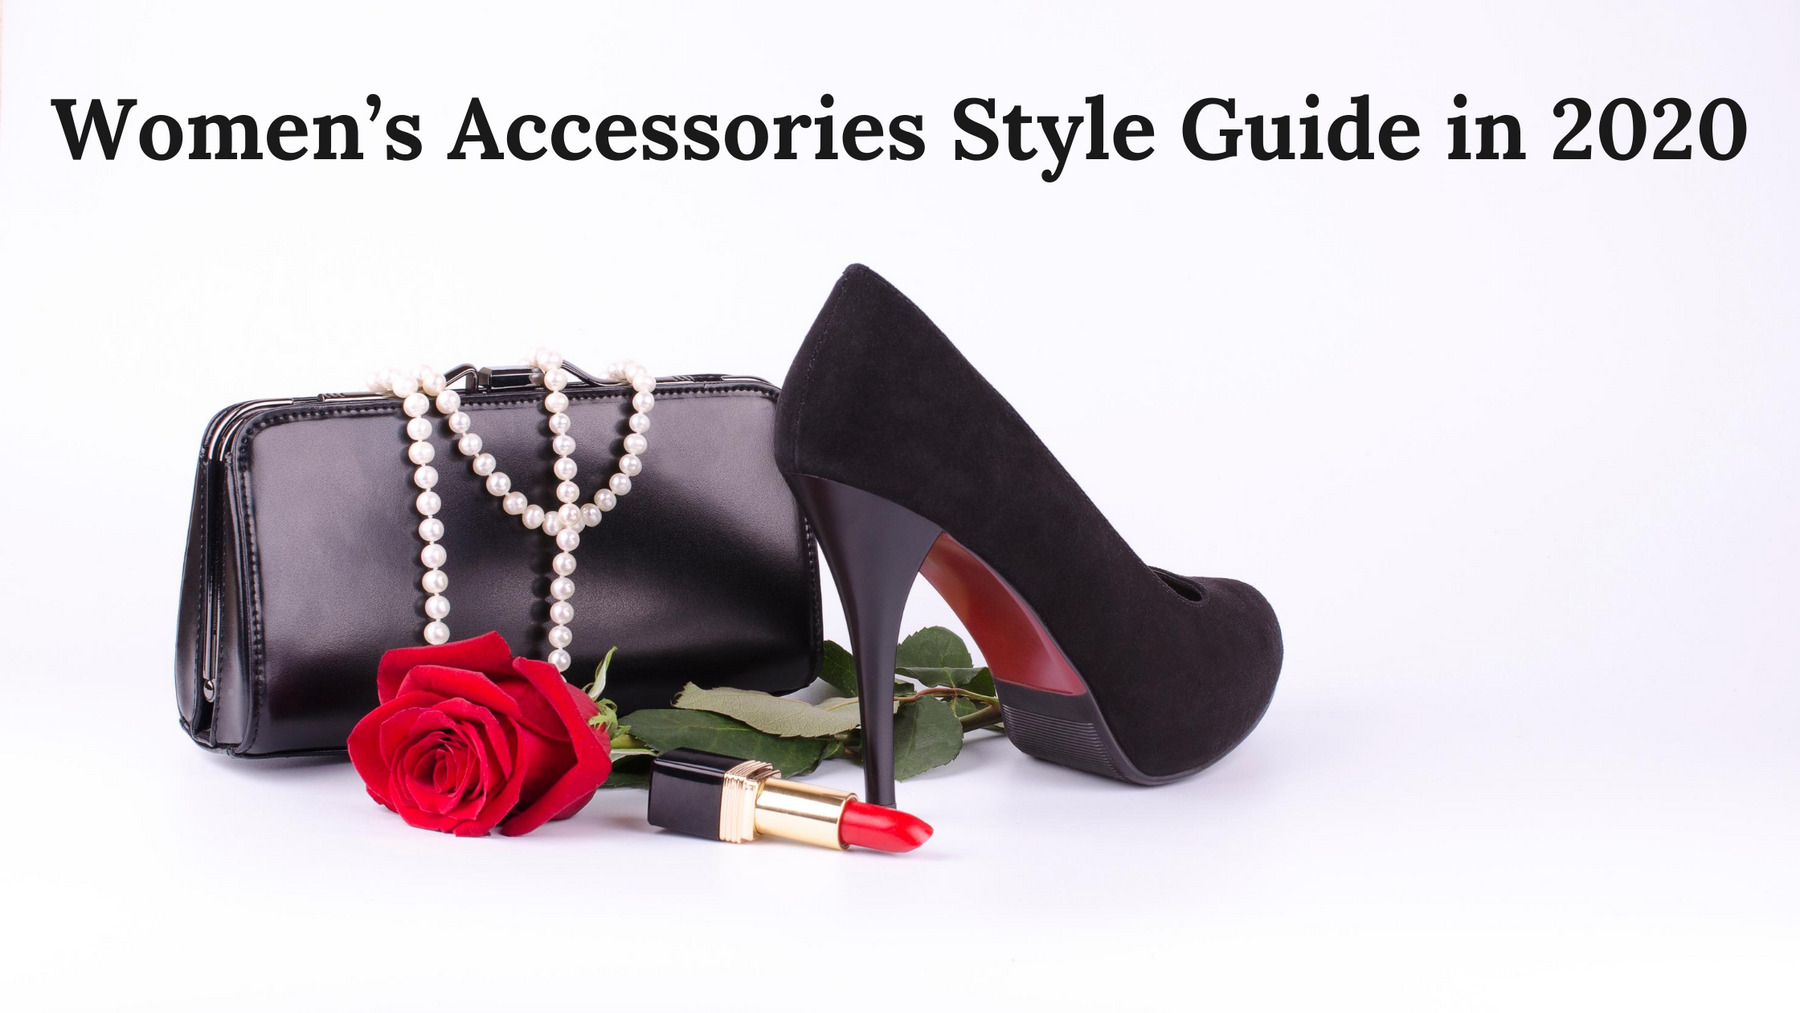 Women's Accessories Style Guide in 2020 (Women's Style)